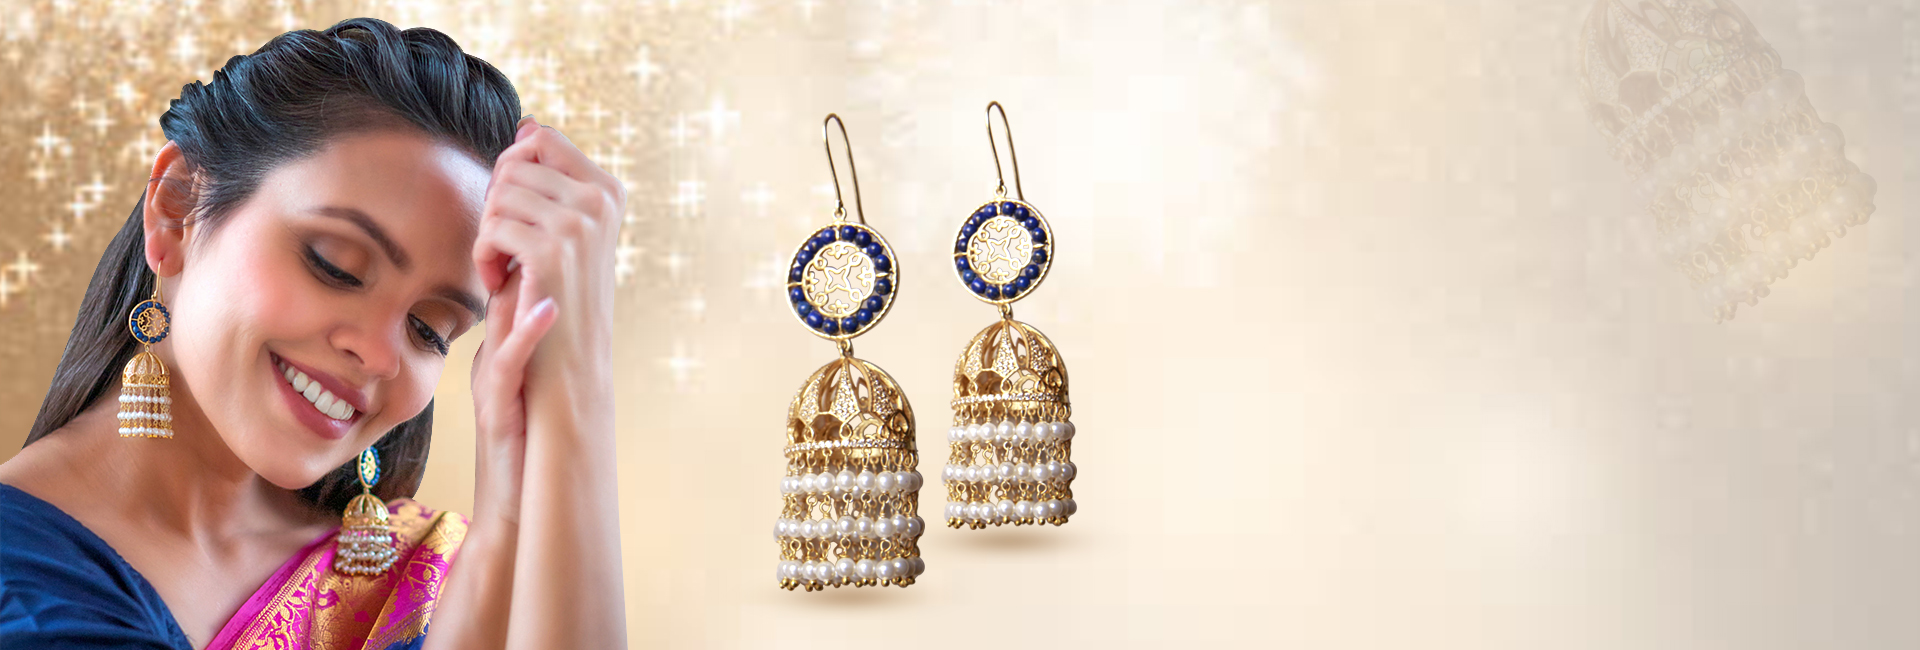 Shop the jaipur silver earrings online at Mohmaya